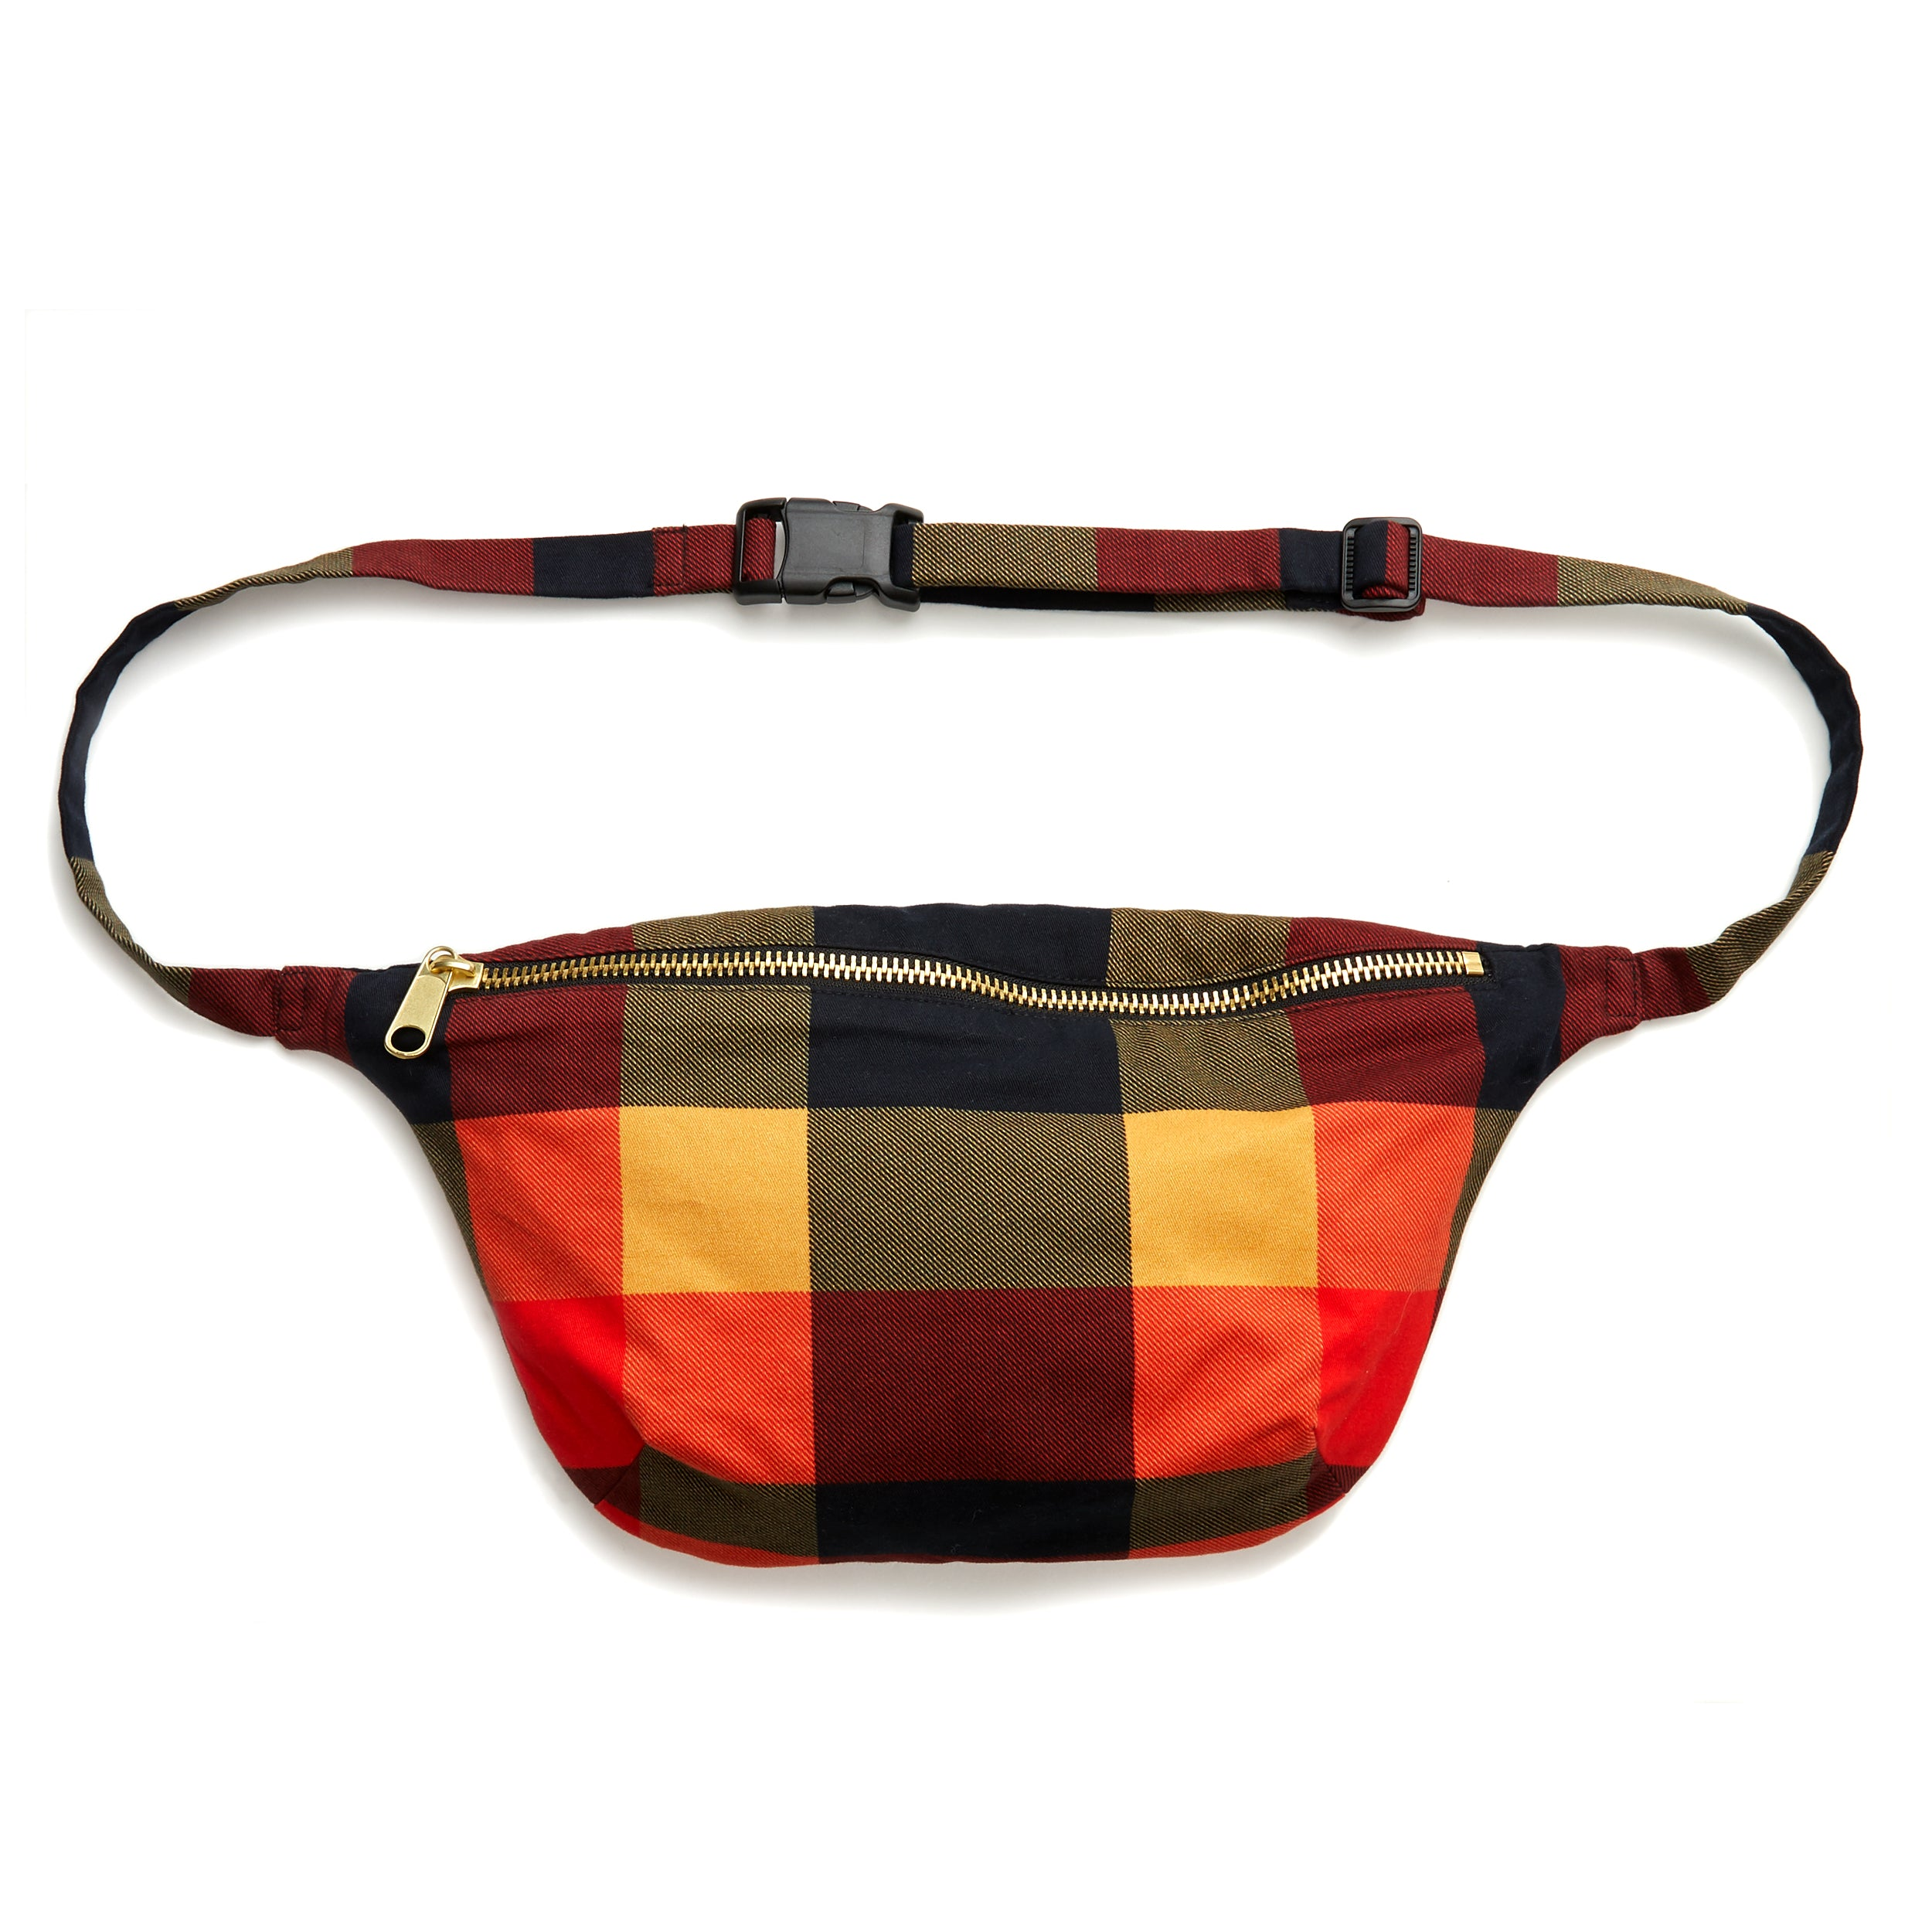 The 1984 Plaid Sling Bag